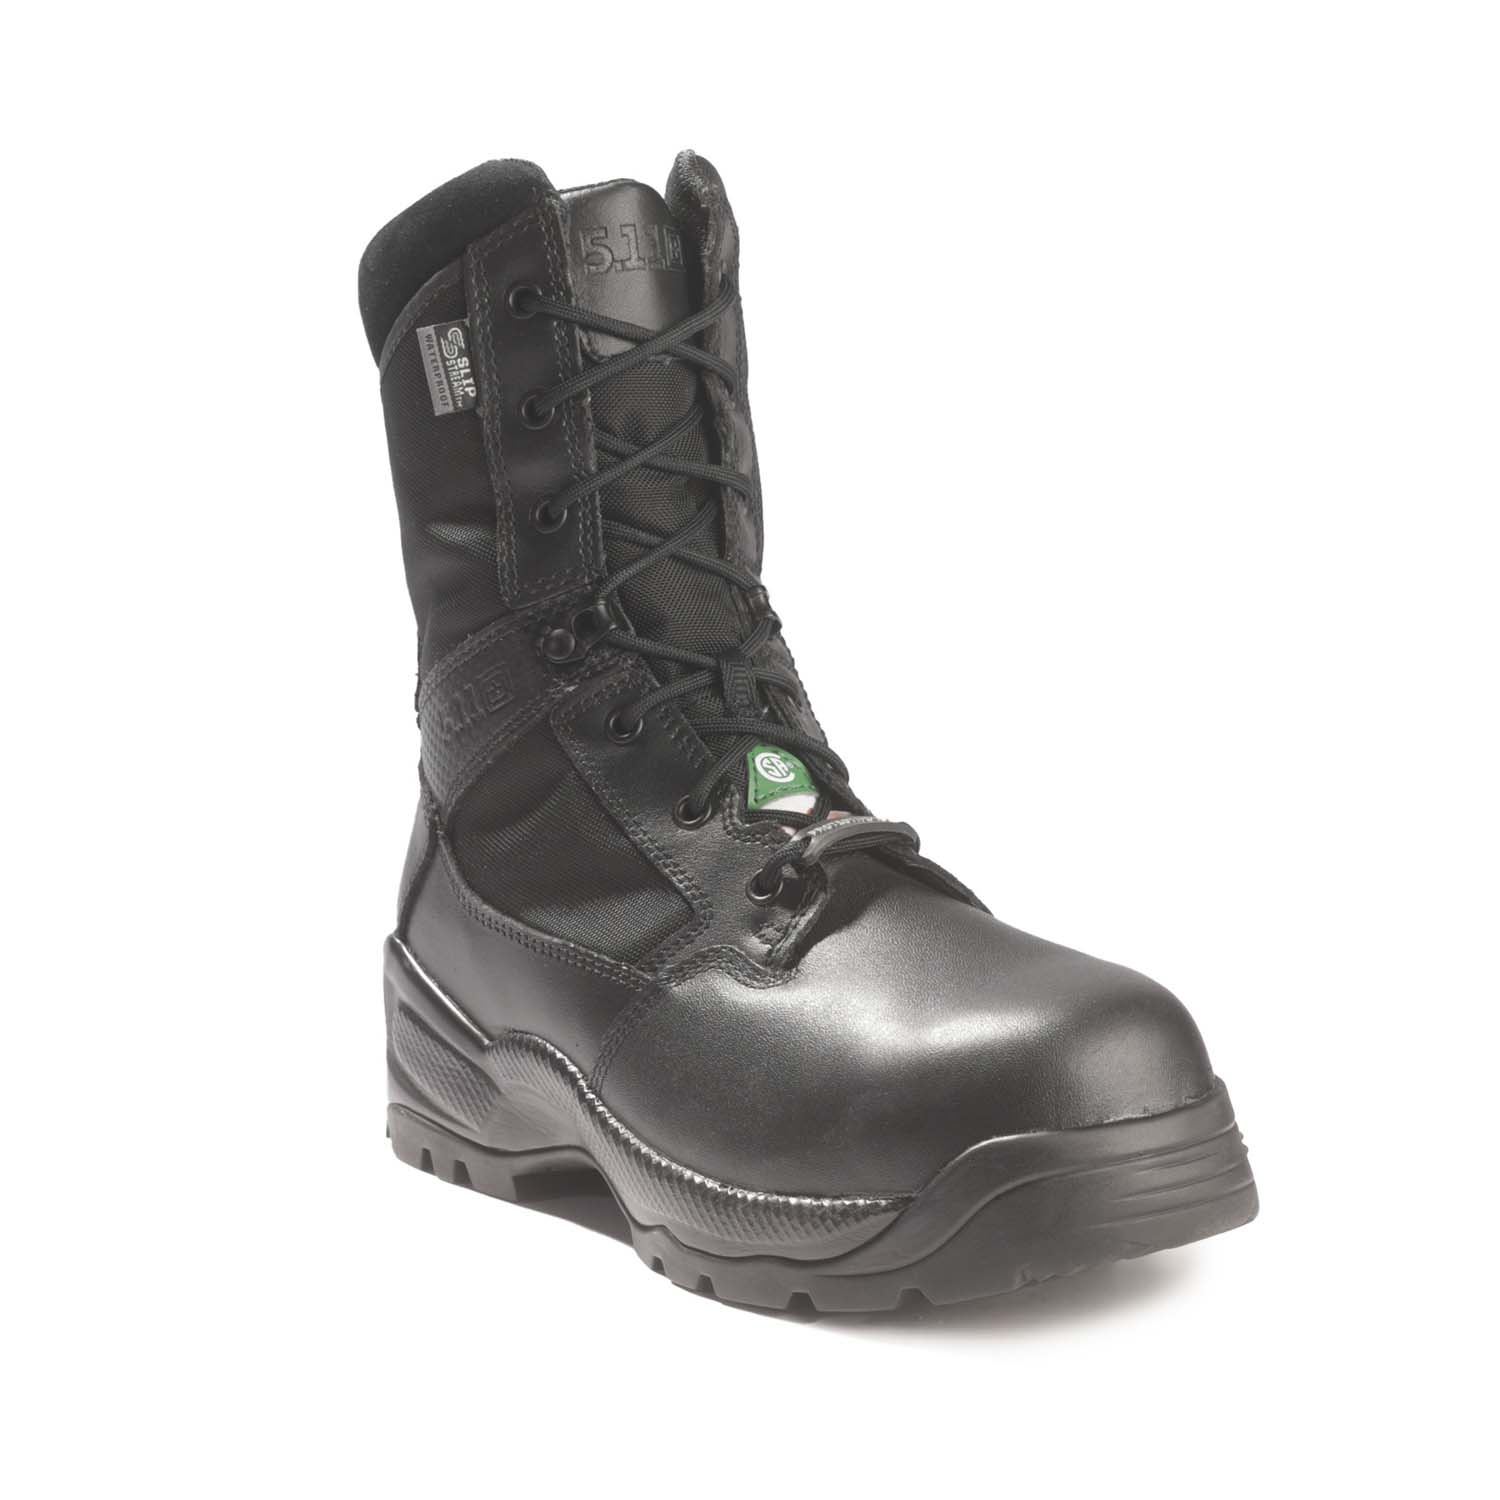 "5.11 Tactical ATAC 2.0 8"" Shield Duty Boots"